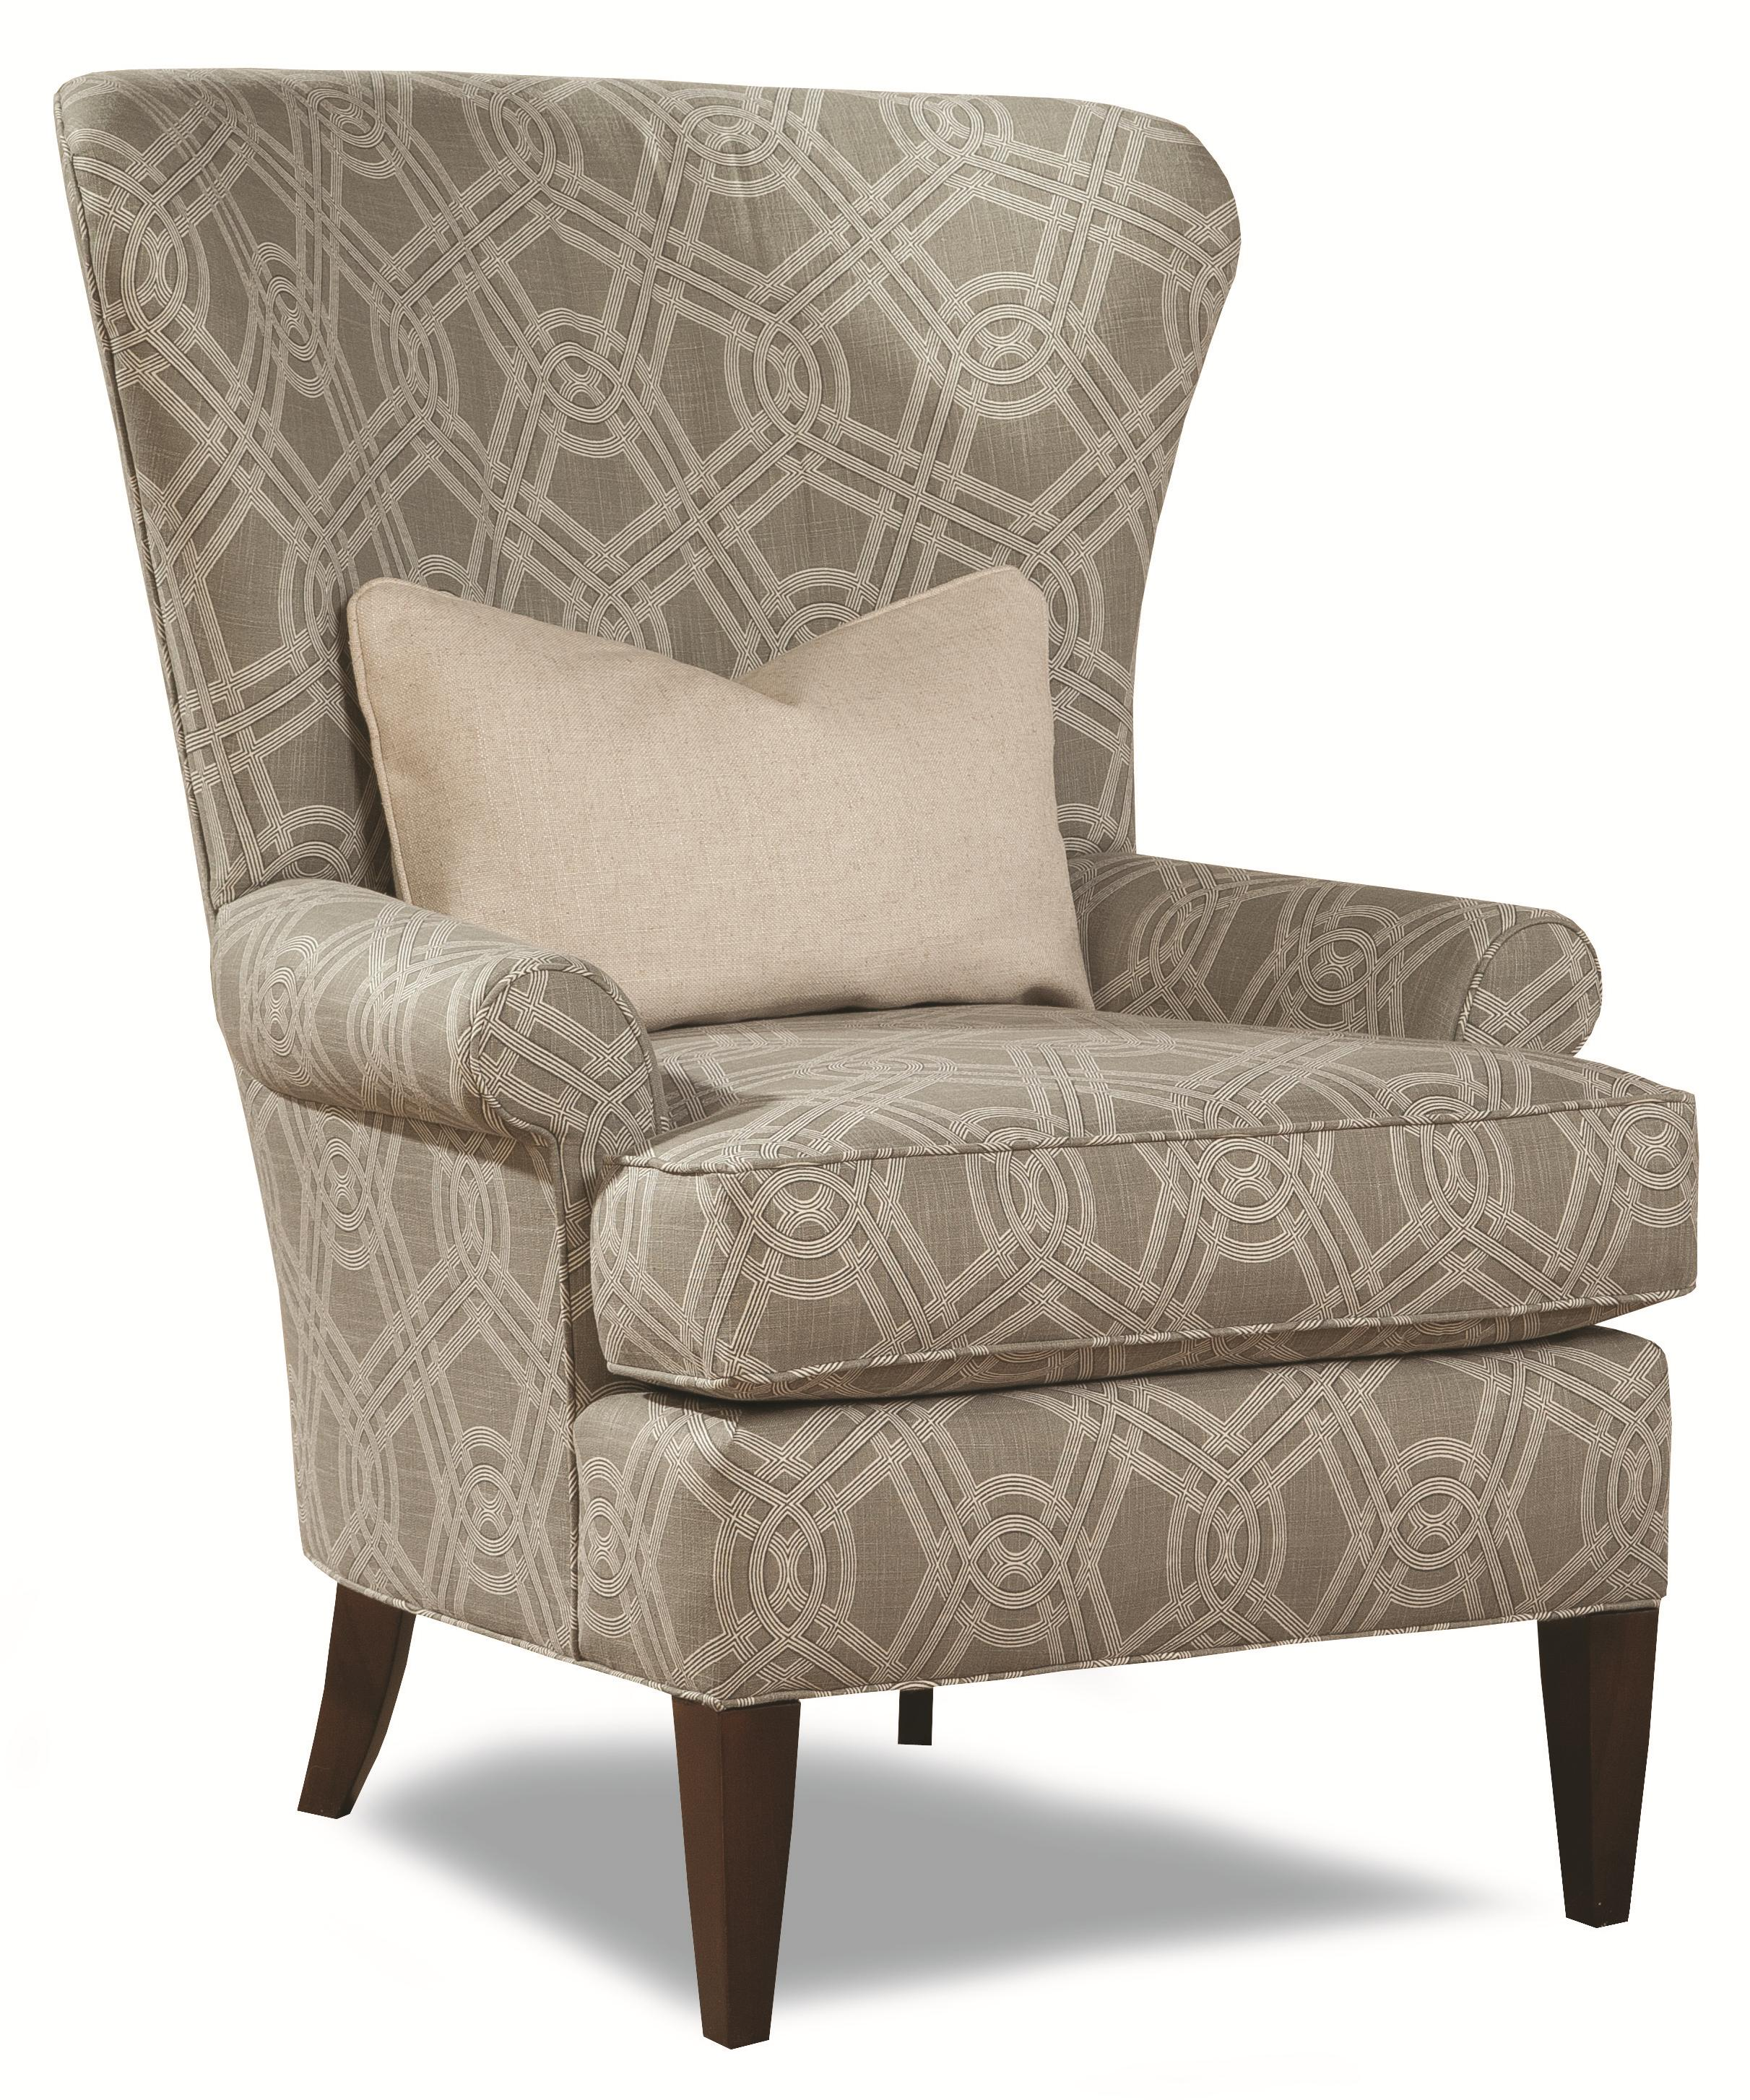 traditional accent chairs cheap pool huntington house 7491 chair with curved